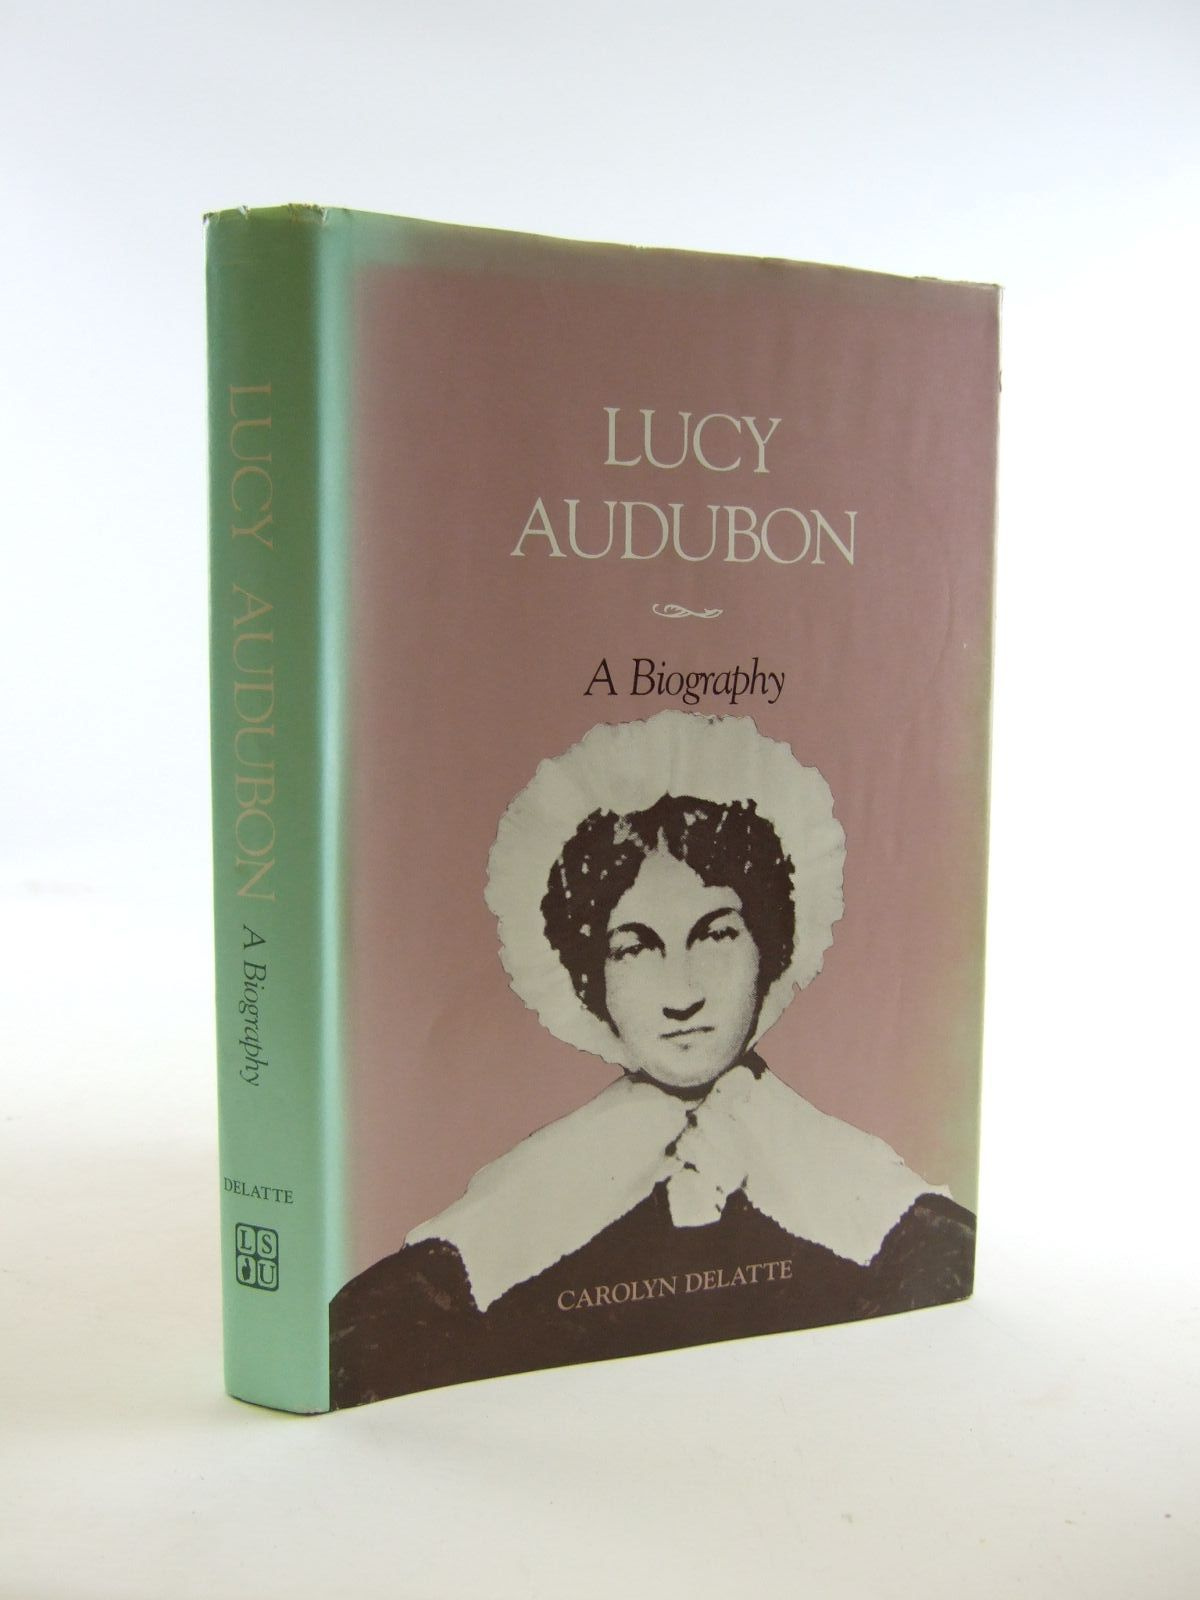 Photo of LUCY AUDUBON A BIOGRAPHY written by Delatte, Carolyn E. published by Louisiana State University Press (STOCK CODE: 1207107)  for sale by Stella & Rose's Books